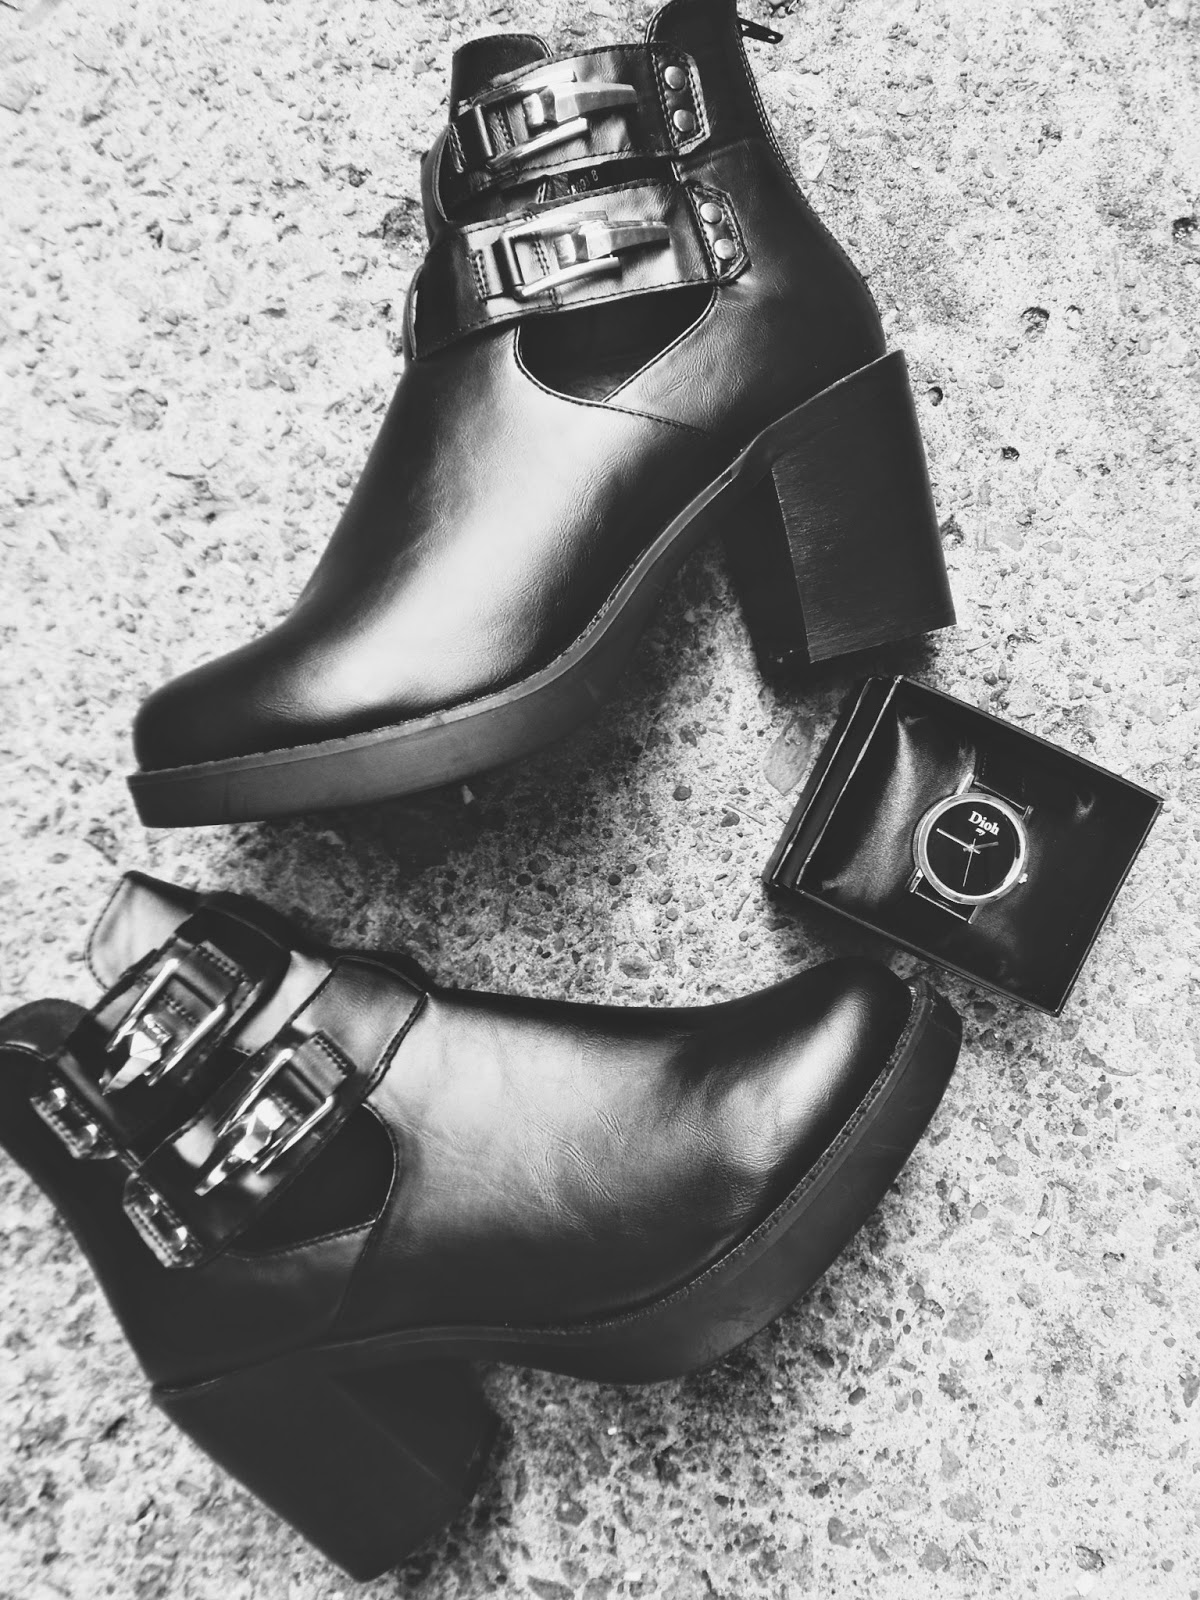 fbloggers, black, fashionbloggers, win, ootd, whatibought, whatimwearing, boots, autumnwinter, autumnwinter2014, watch, ohmydioh, asos, primark, shoezone, asseenonme, autumnpreivew, fashion